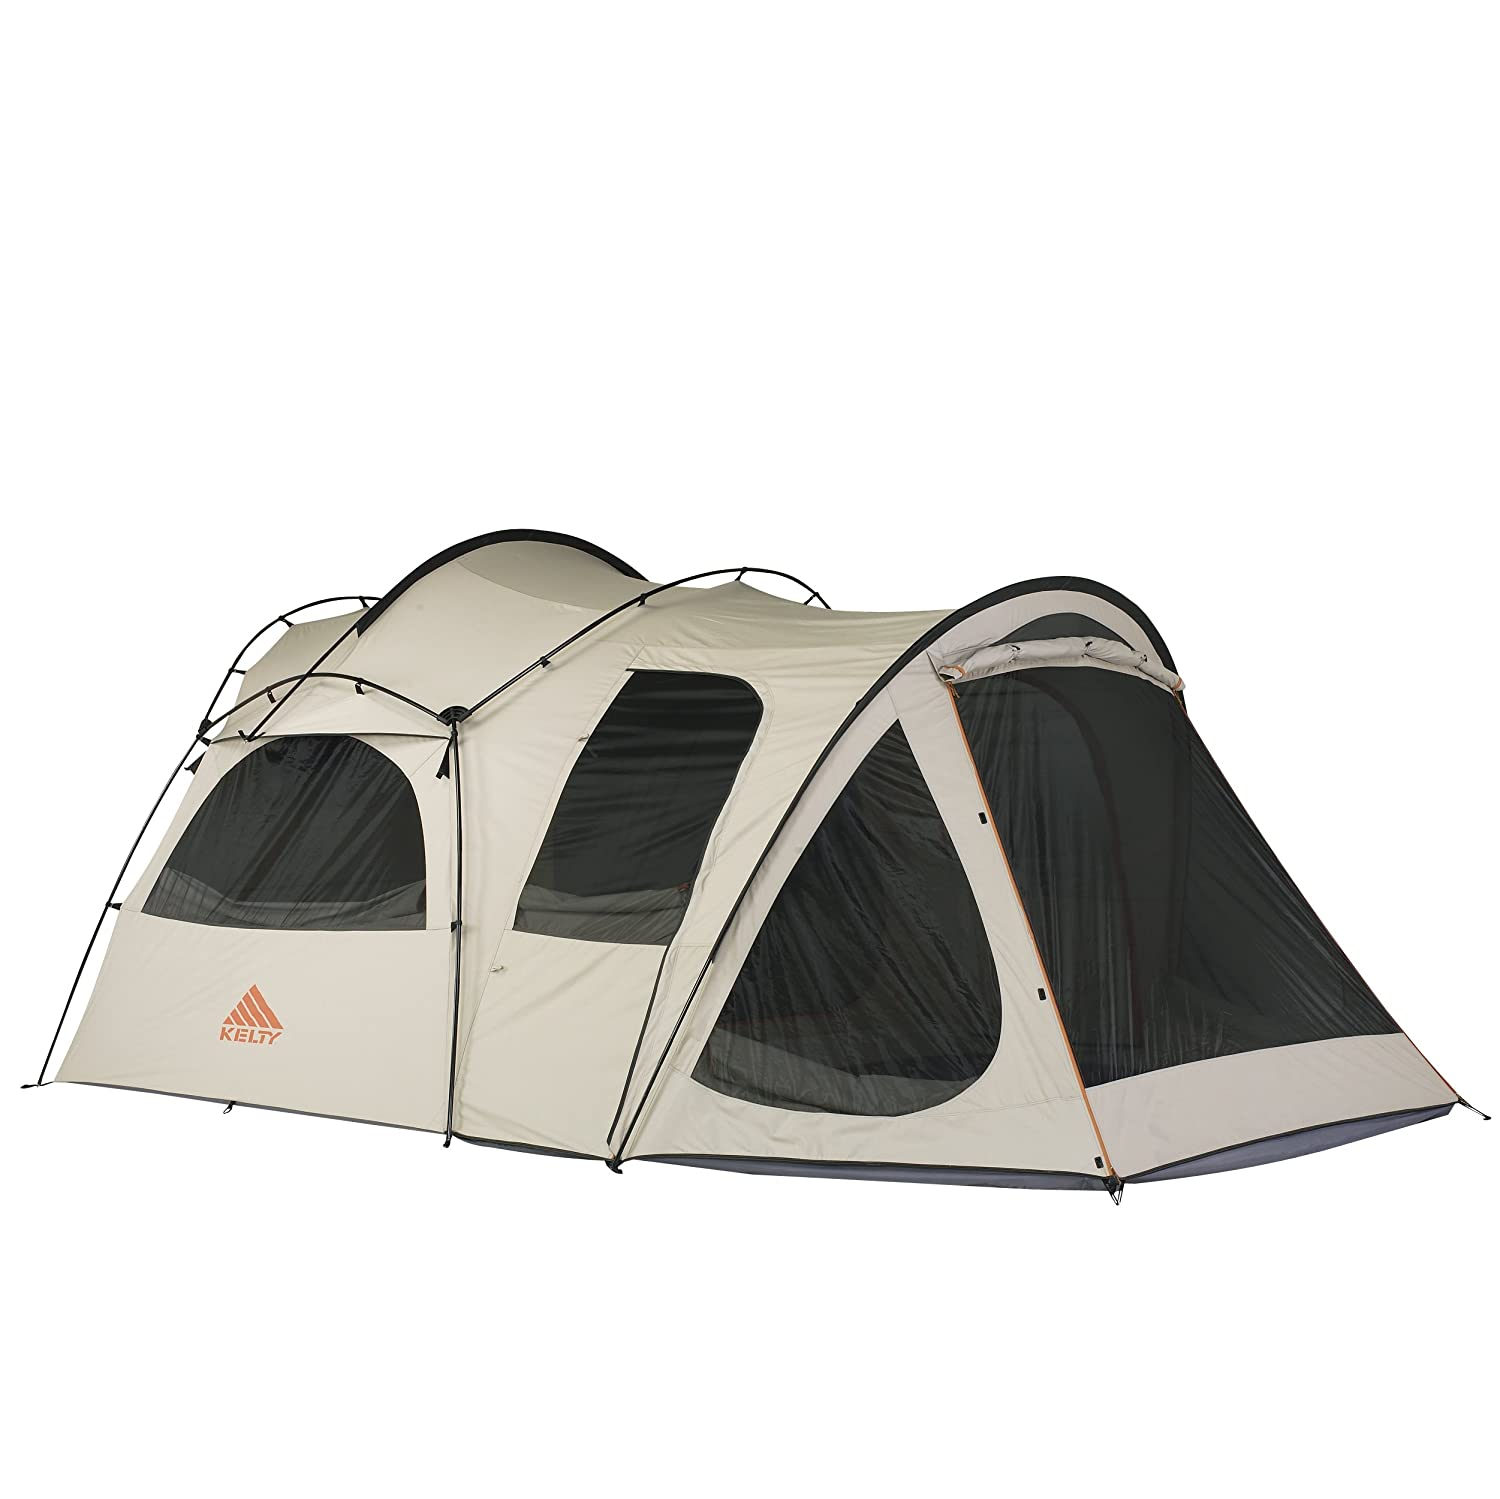 Kelty Frontier 10X10 6 Person Canvas Tent - Putty Amazon.co.uk Sports u0026 Outdoors  sc 1 st  Amazon UK & Kelty Frontier 10X10 6 Person Canvas Tent - Putty: Amazon.co.uk ...